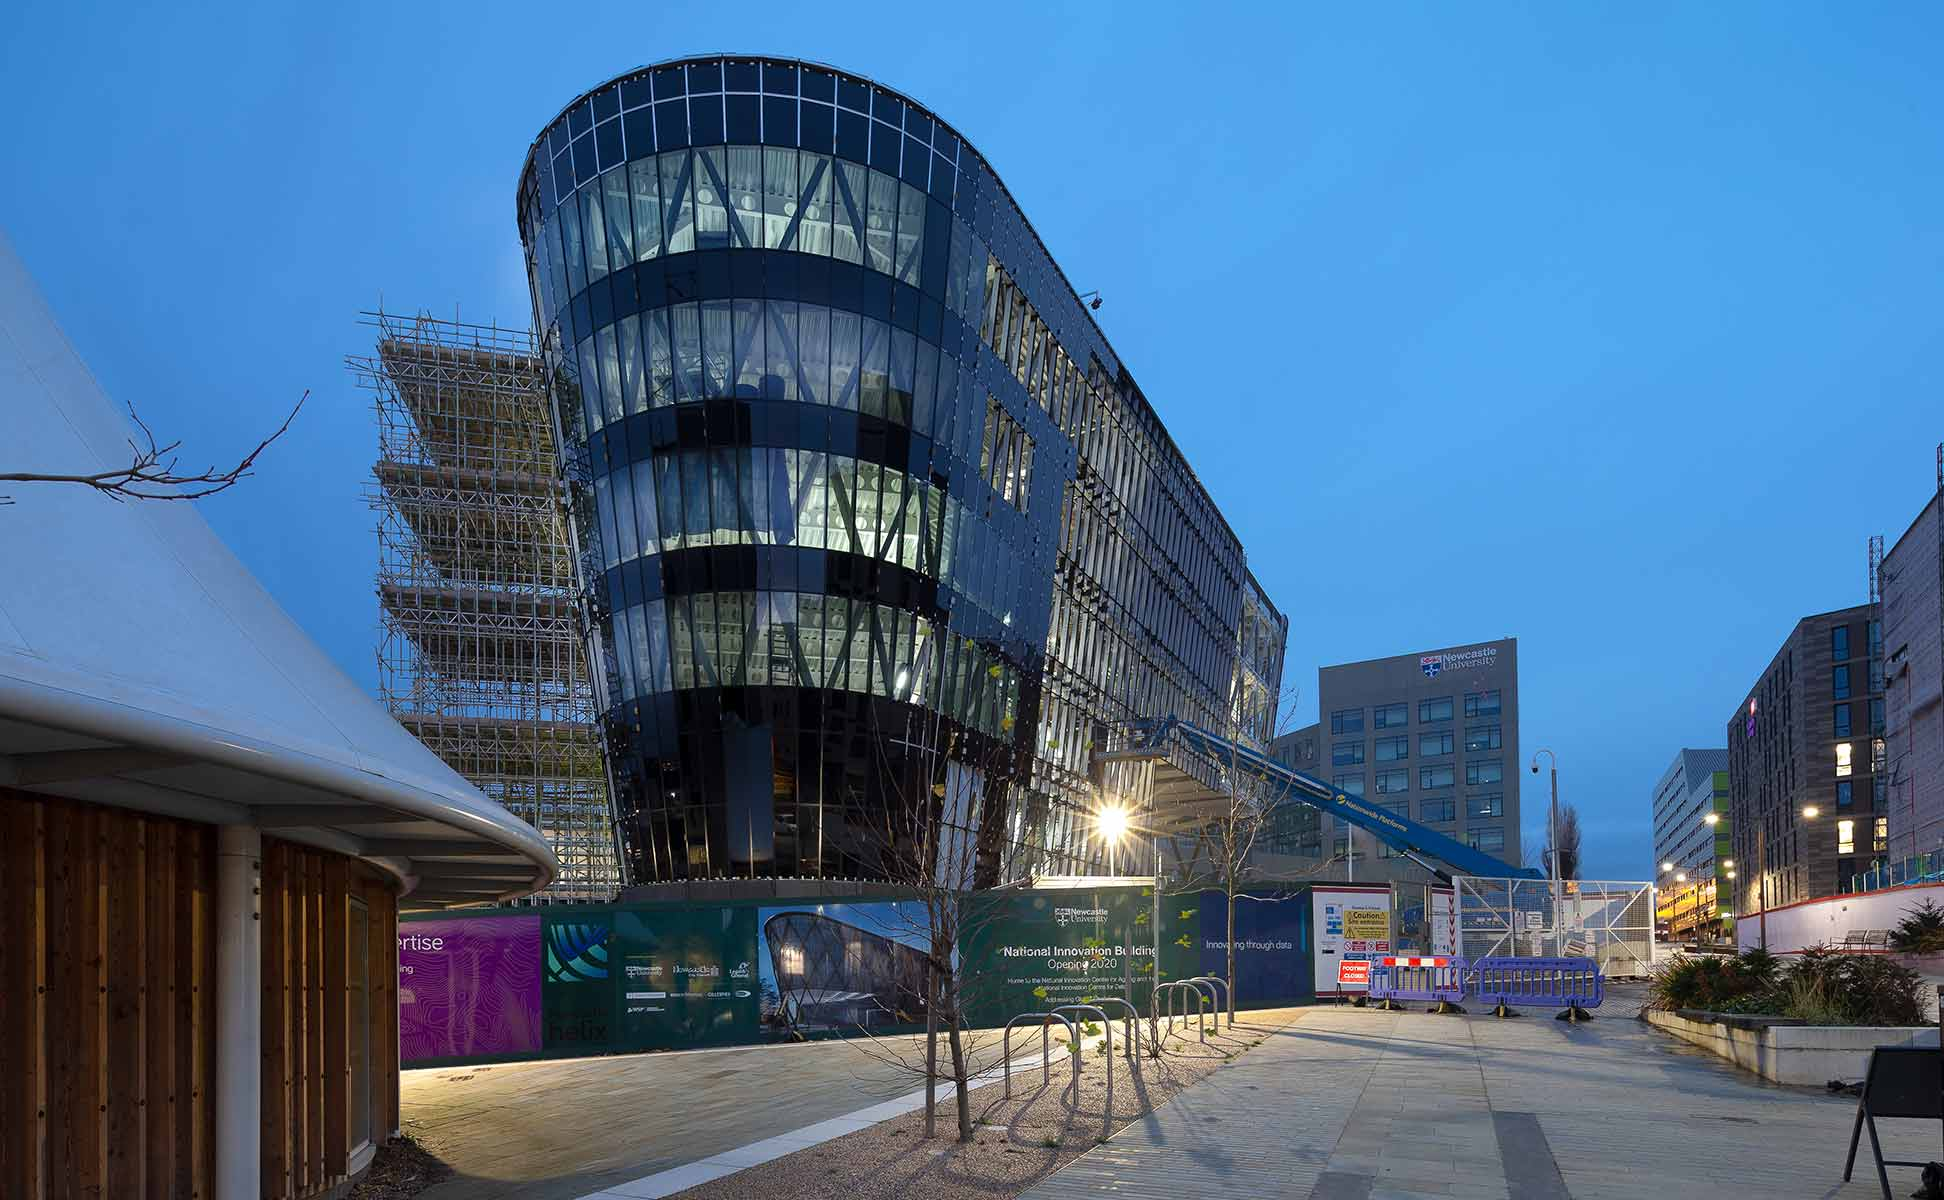 Construction photography showing the National Innovation Centre Newcastle in early morning December light